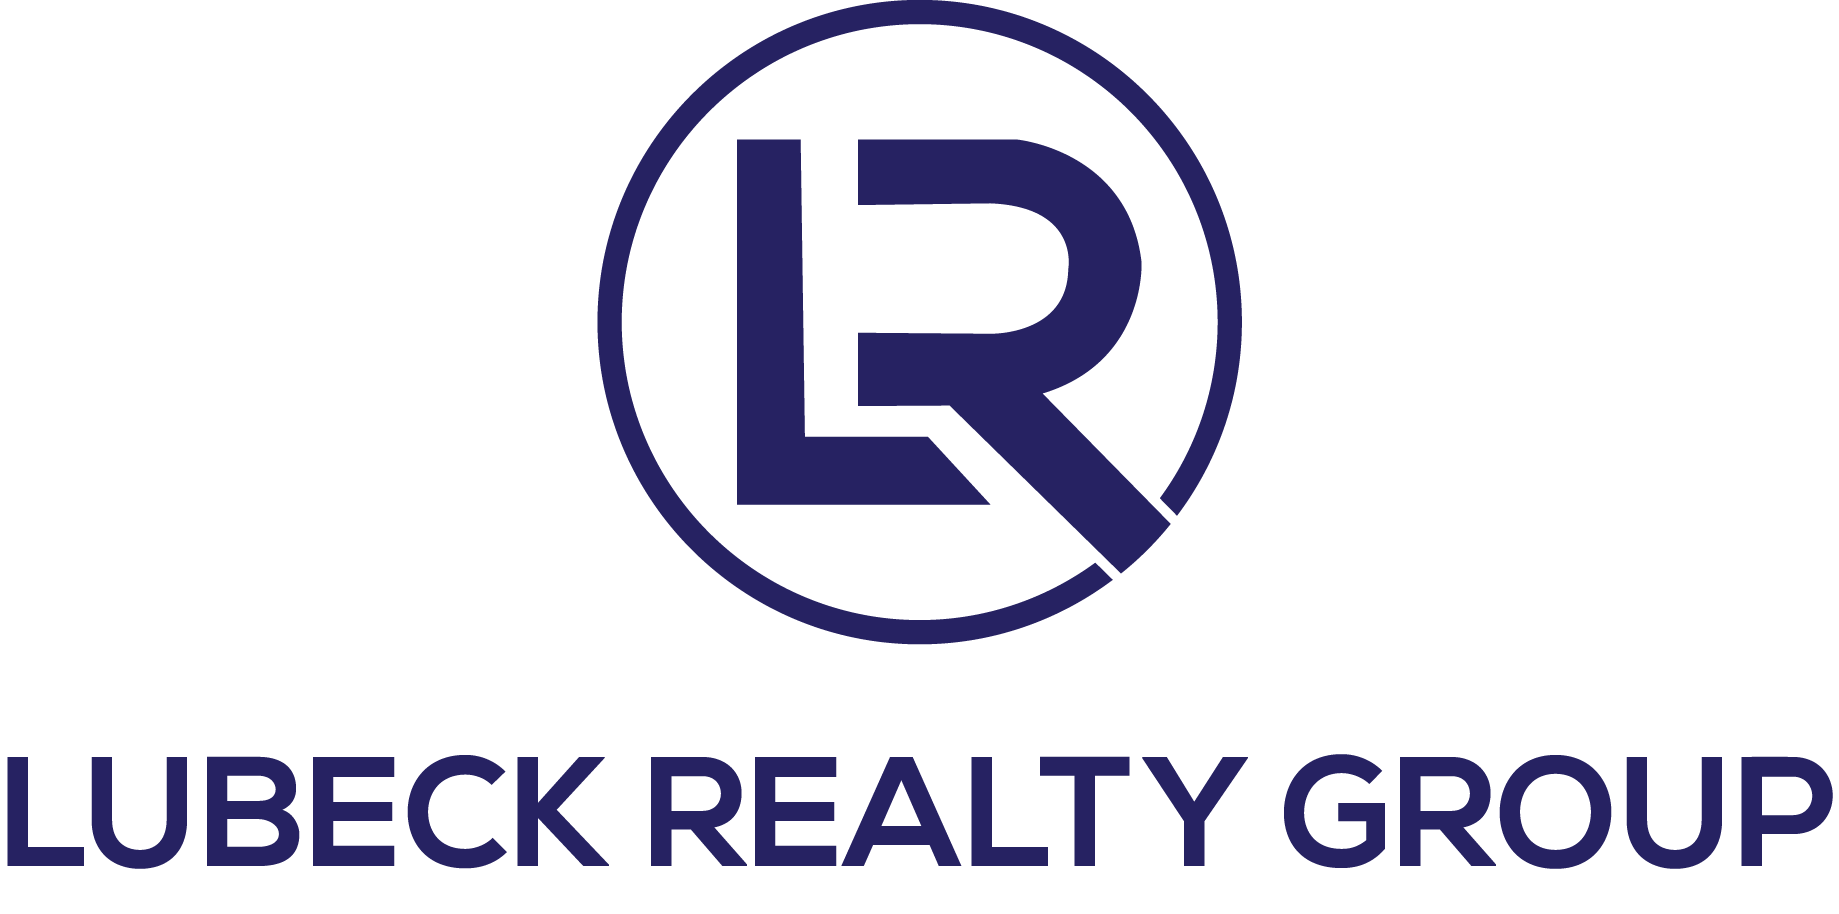 Lubeck Realty Group